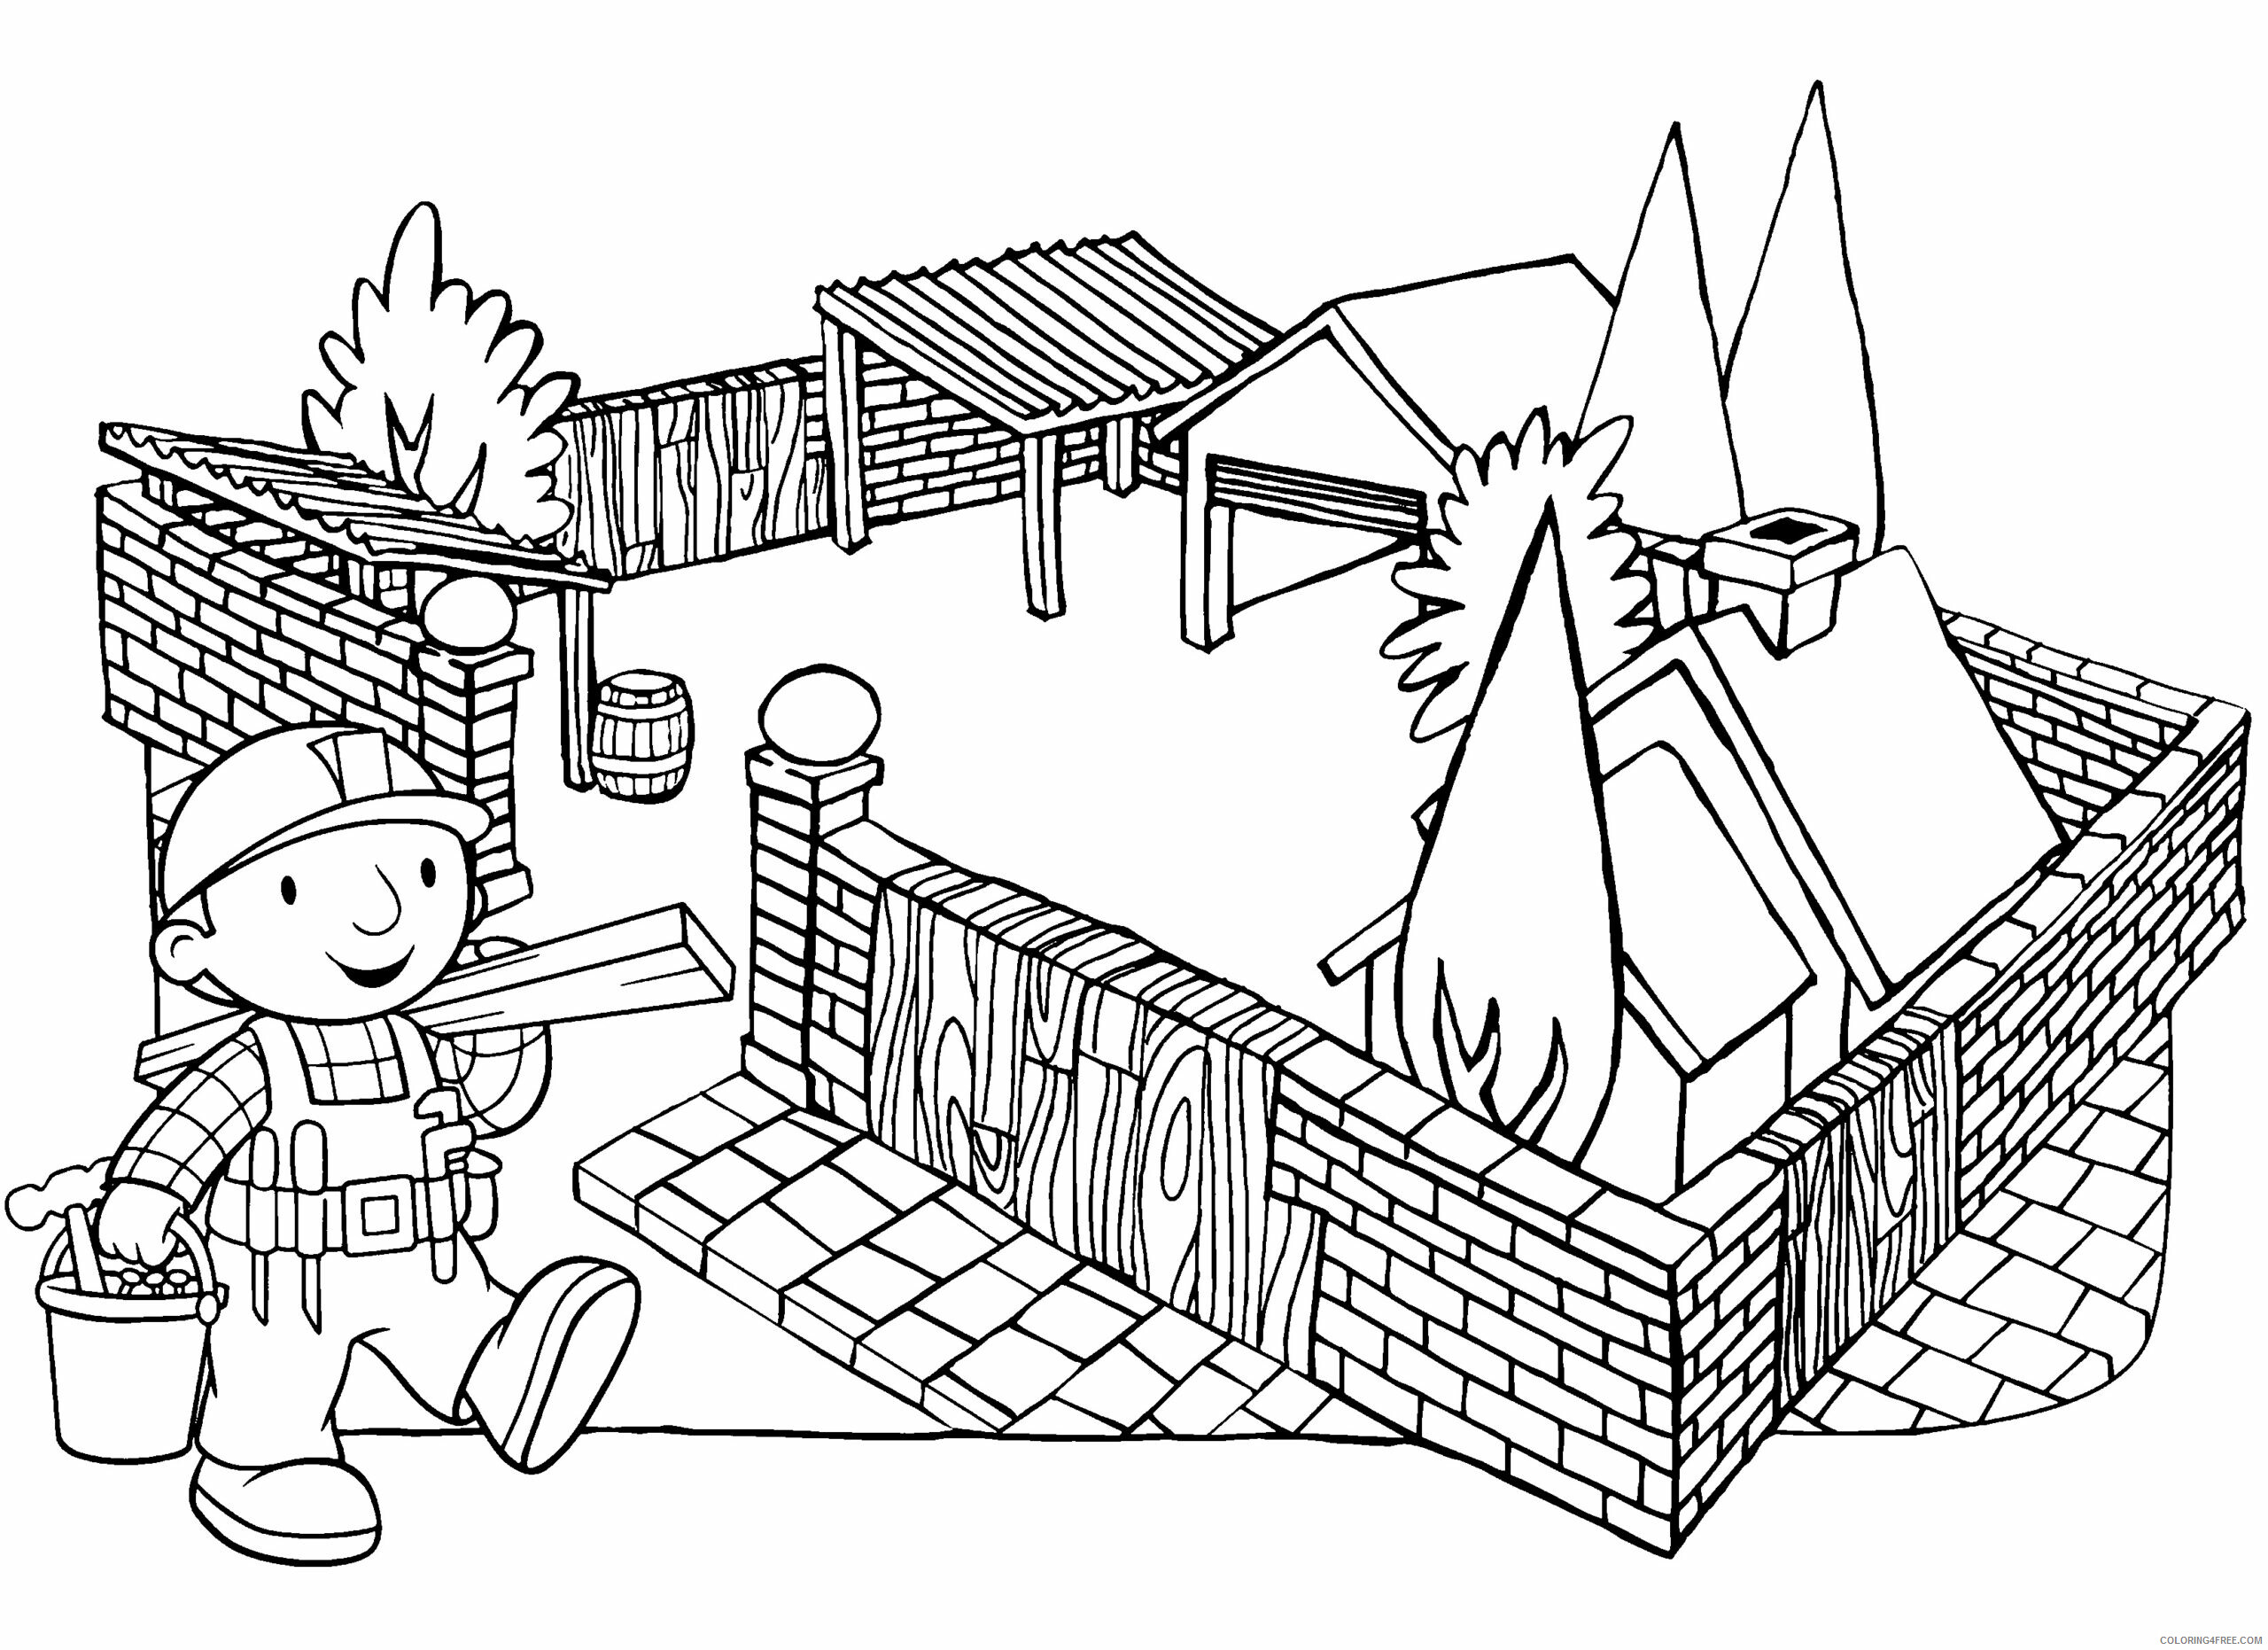 Bob the Builder Coloring Pages TV Film bob the builder 49 Printable 2020 01068 Coloring4free